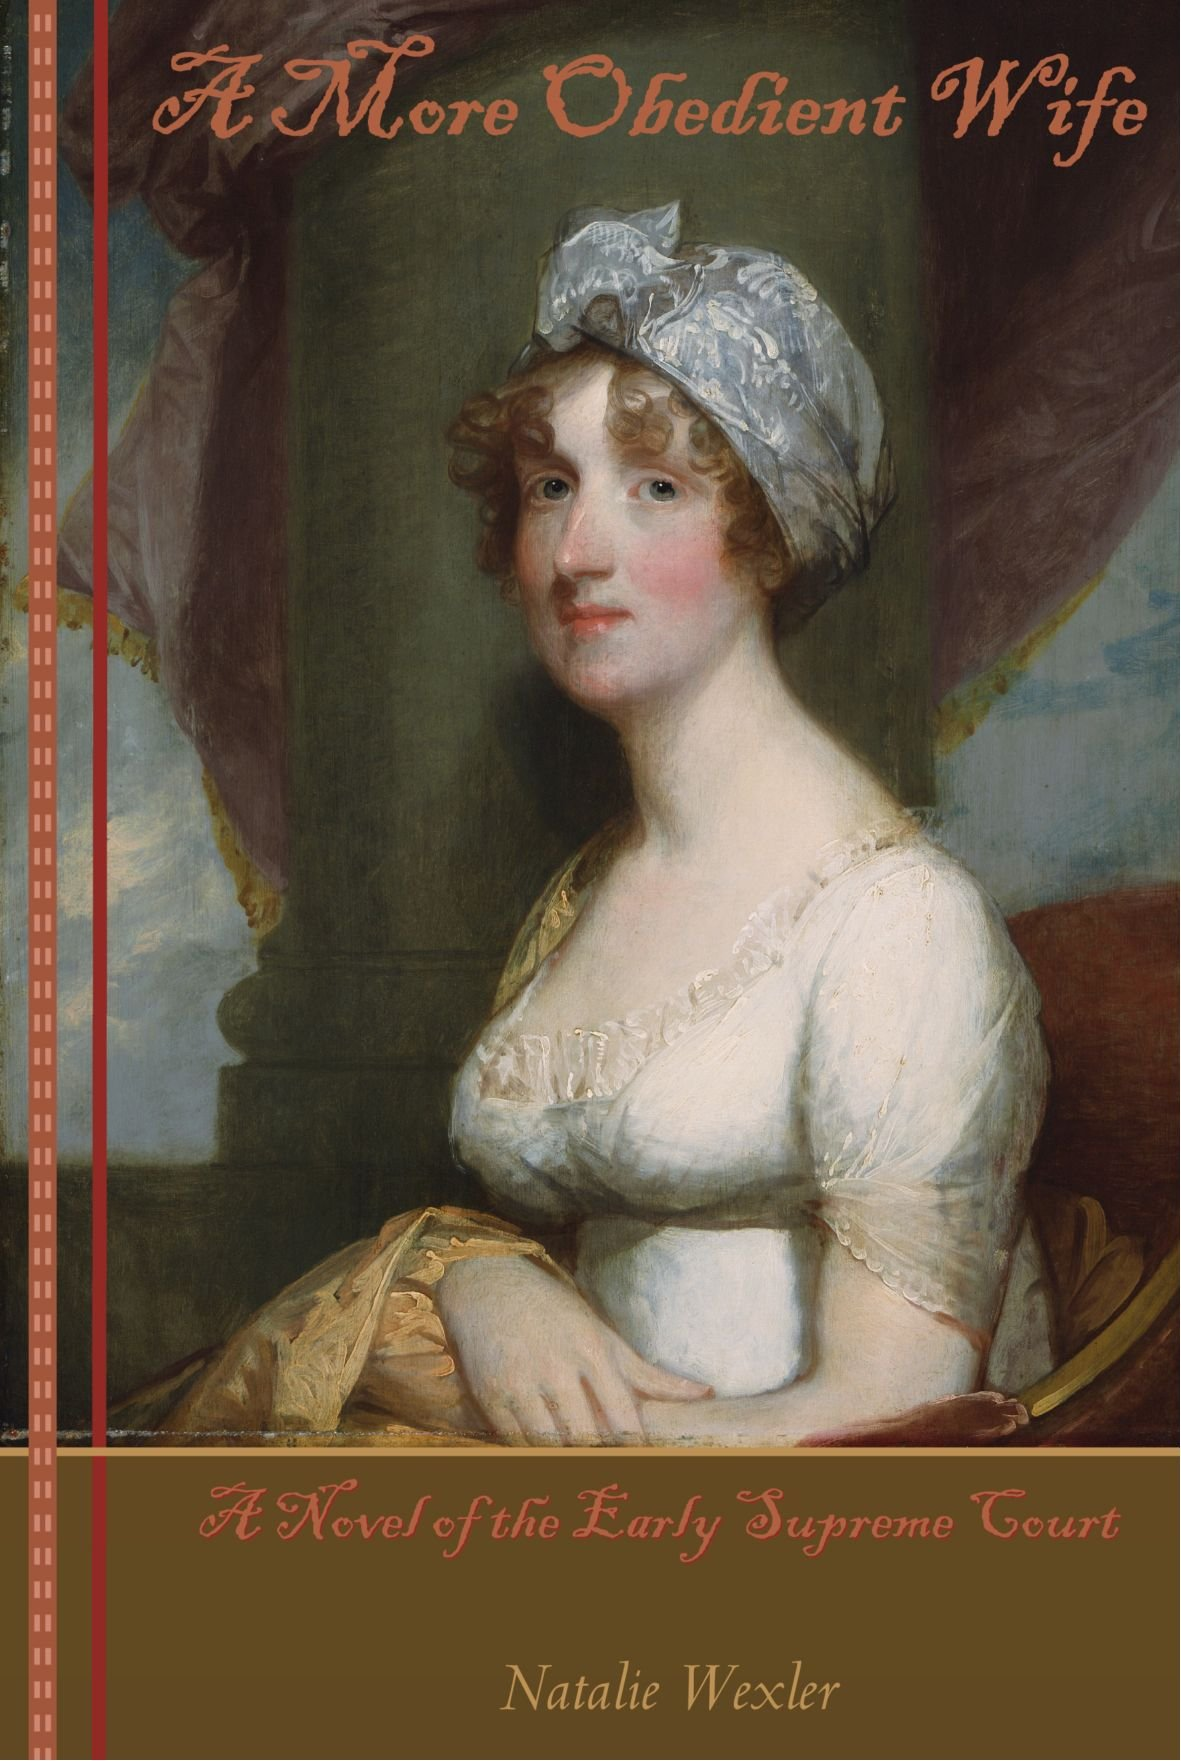 Download image 1700s woman portrait pc android iphone and ipad - A More Obedient Wife A Novel Of The Early Supreme Court Natalie Wexler 9780615135168 Amazon Com Books